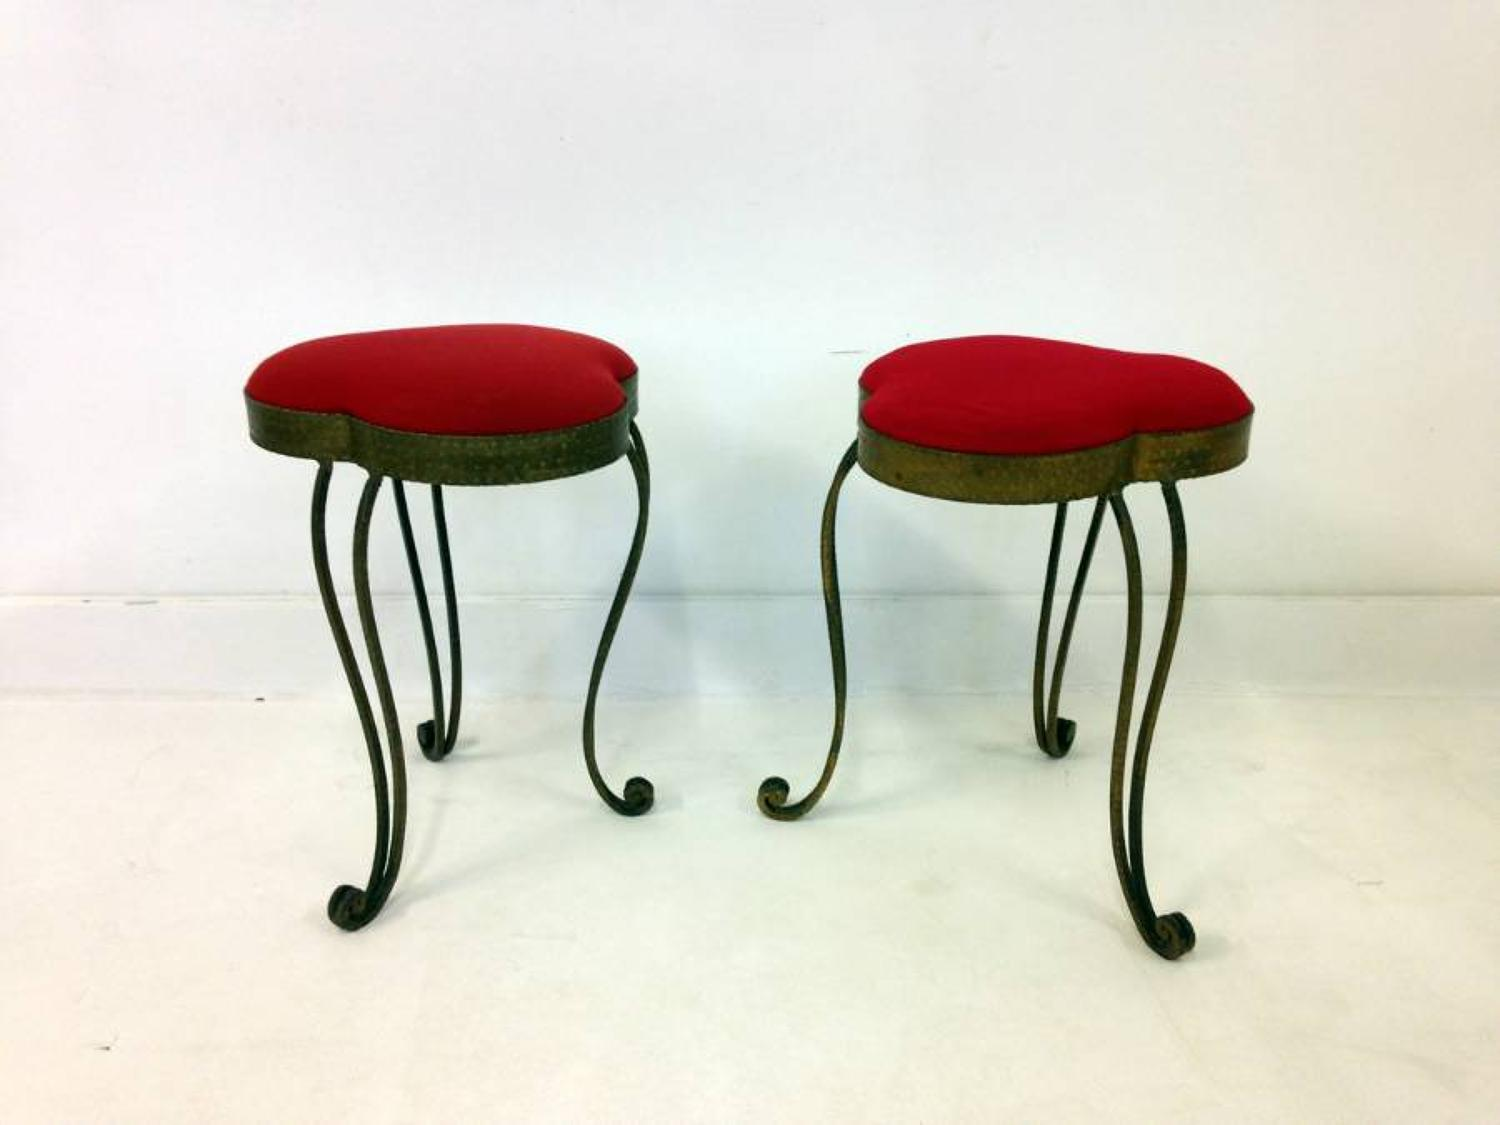 A pair of gilded wrought iron stools